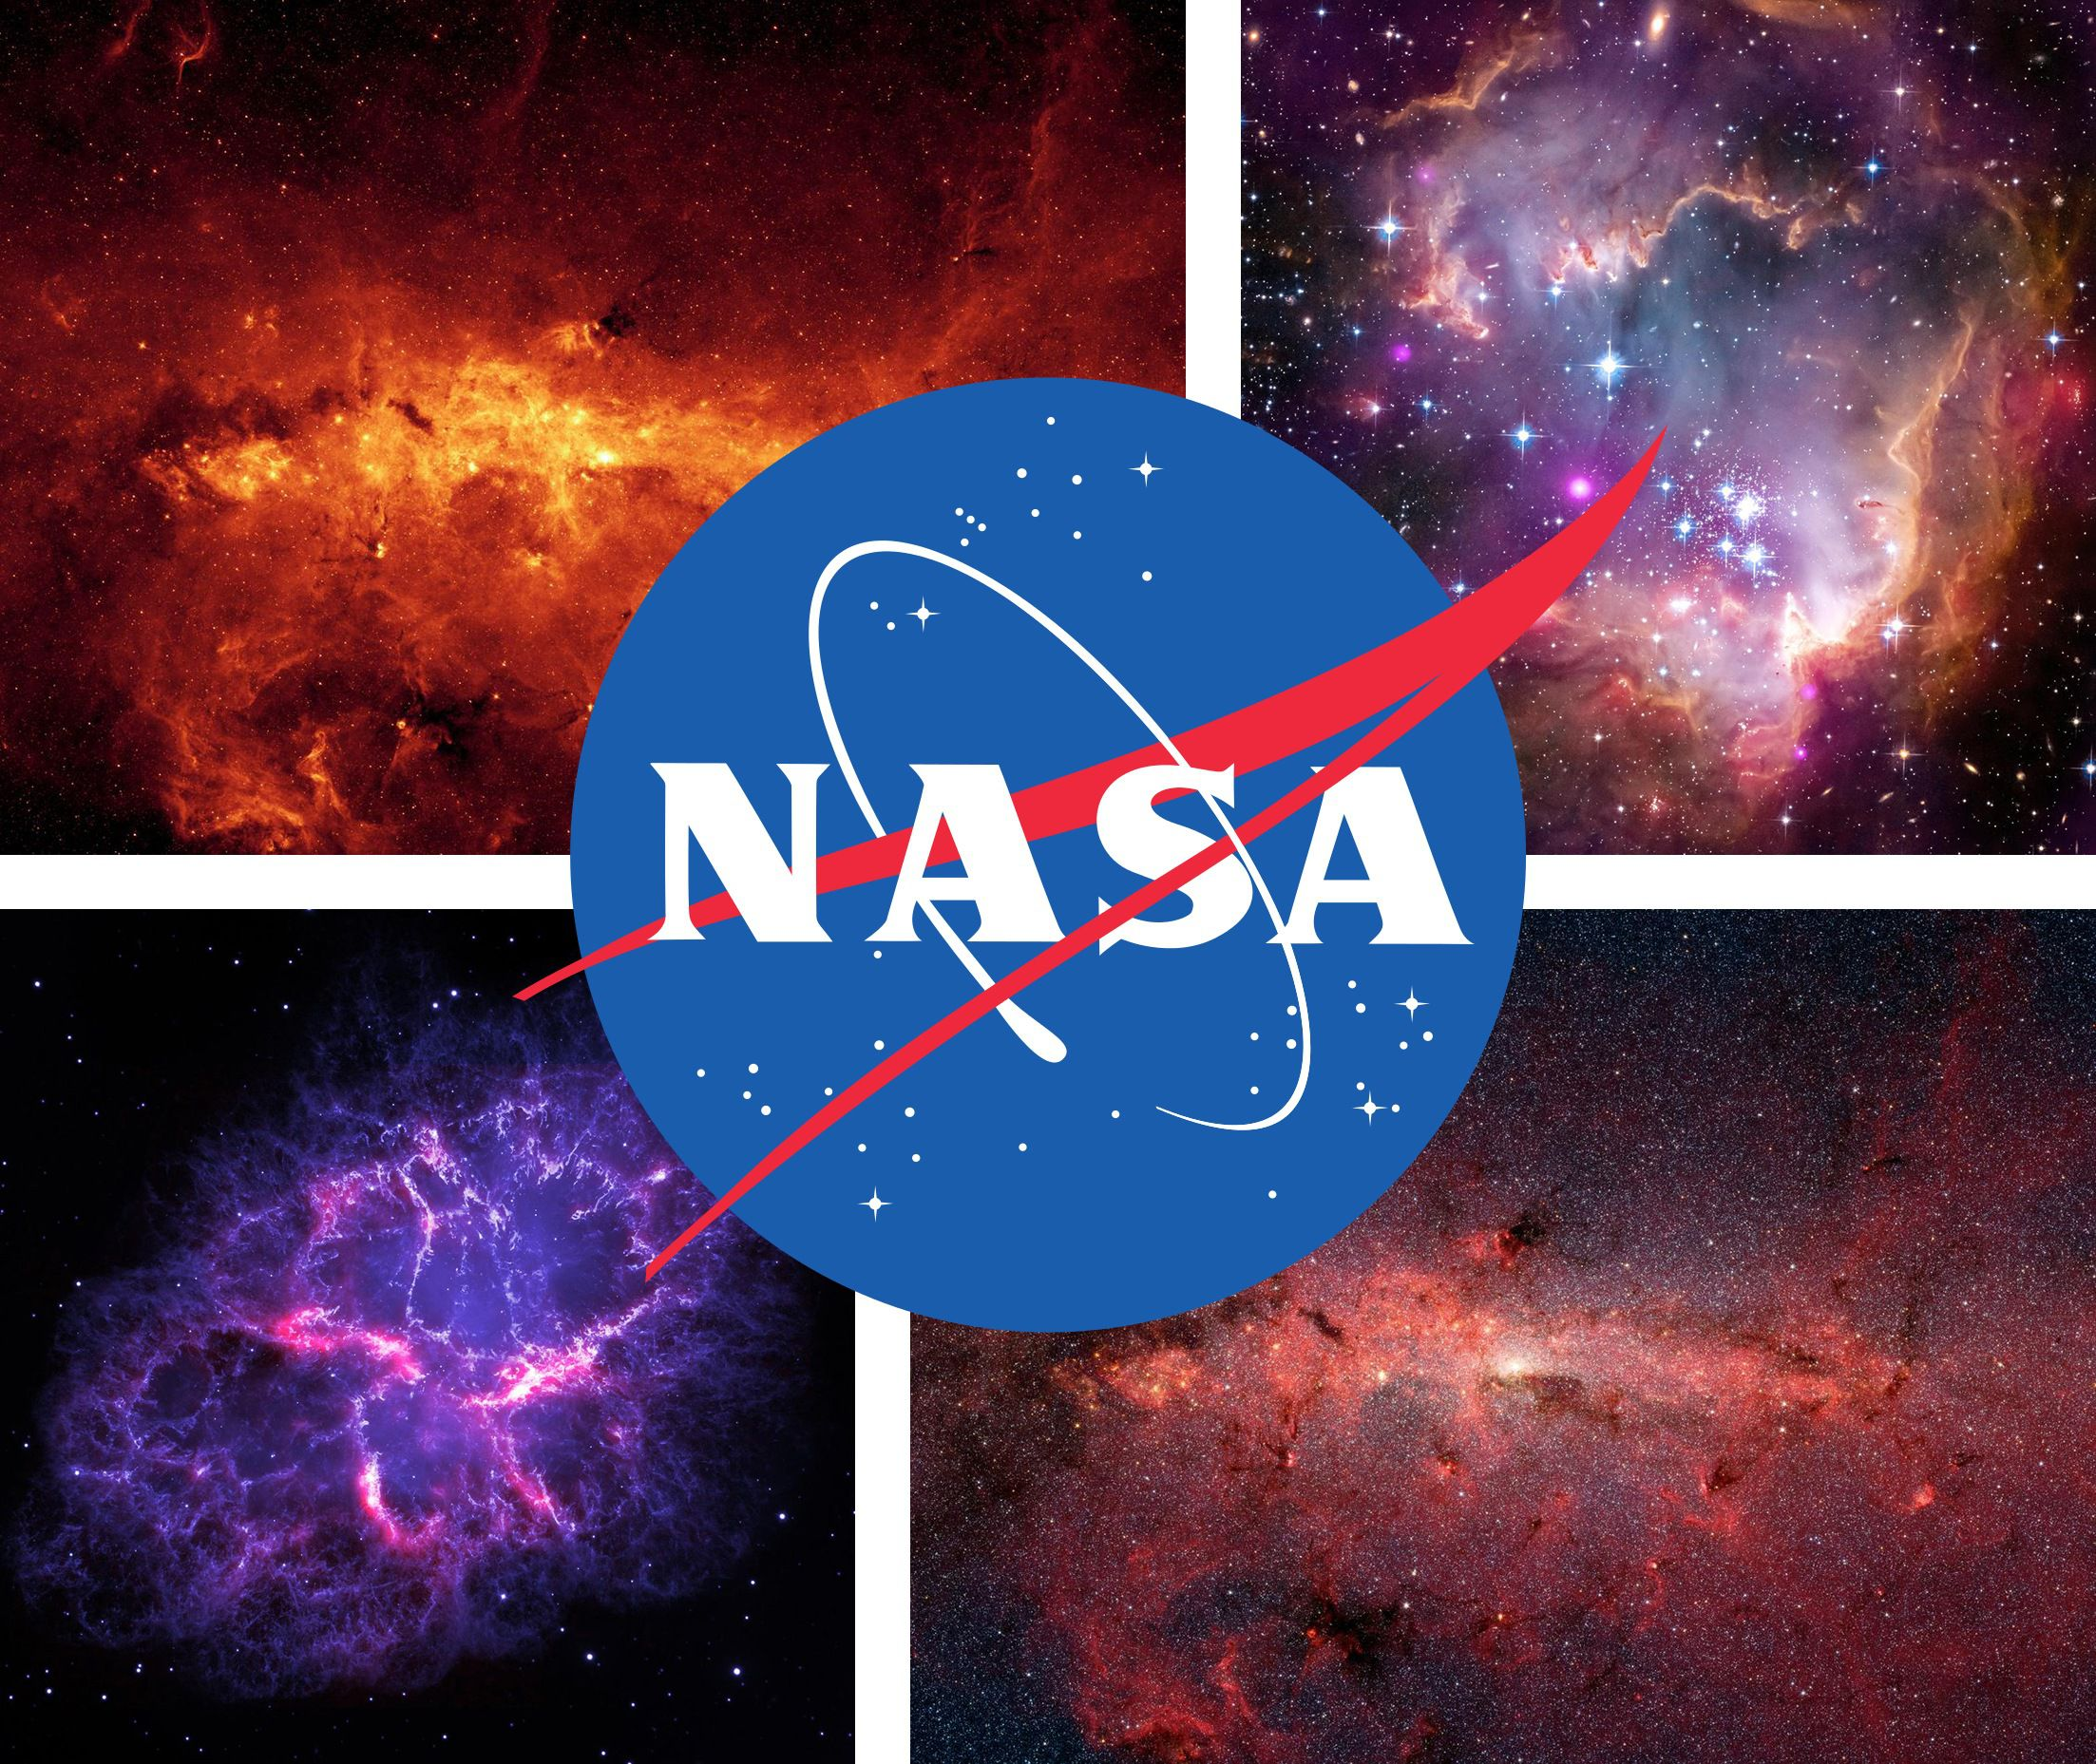 Photo of NASA logo with space pictures in the background